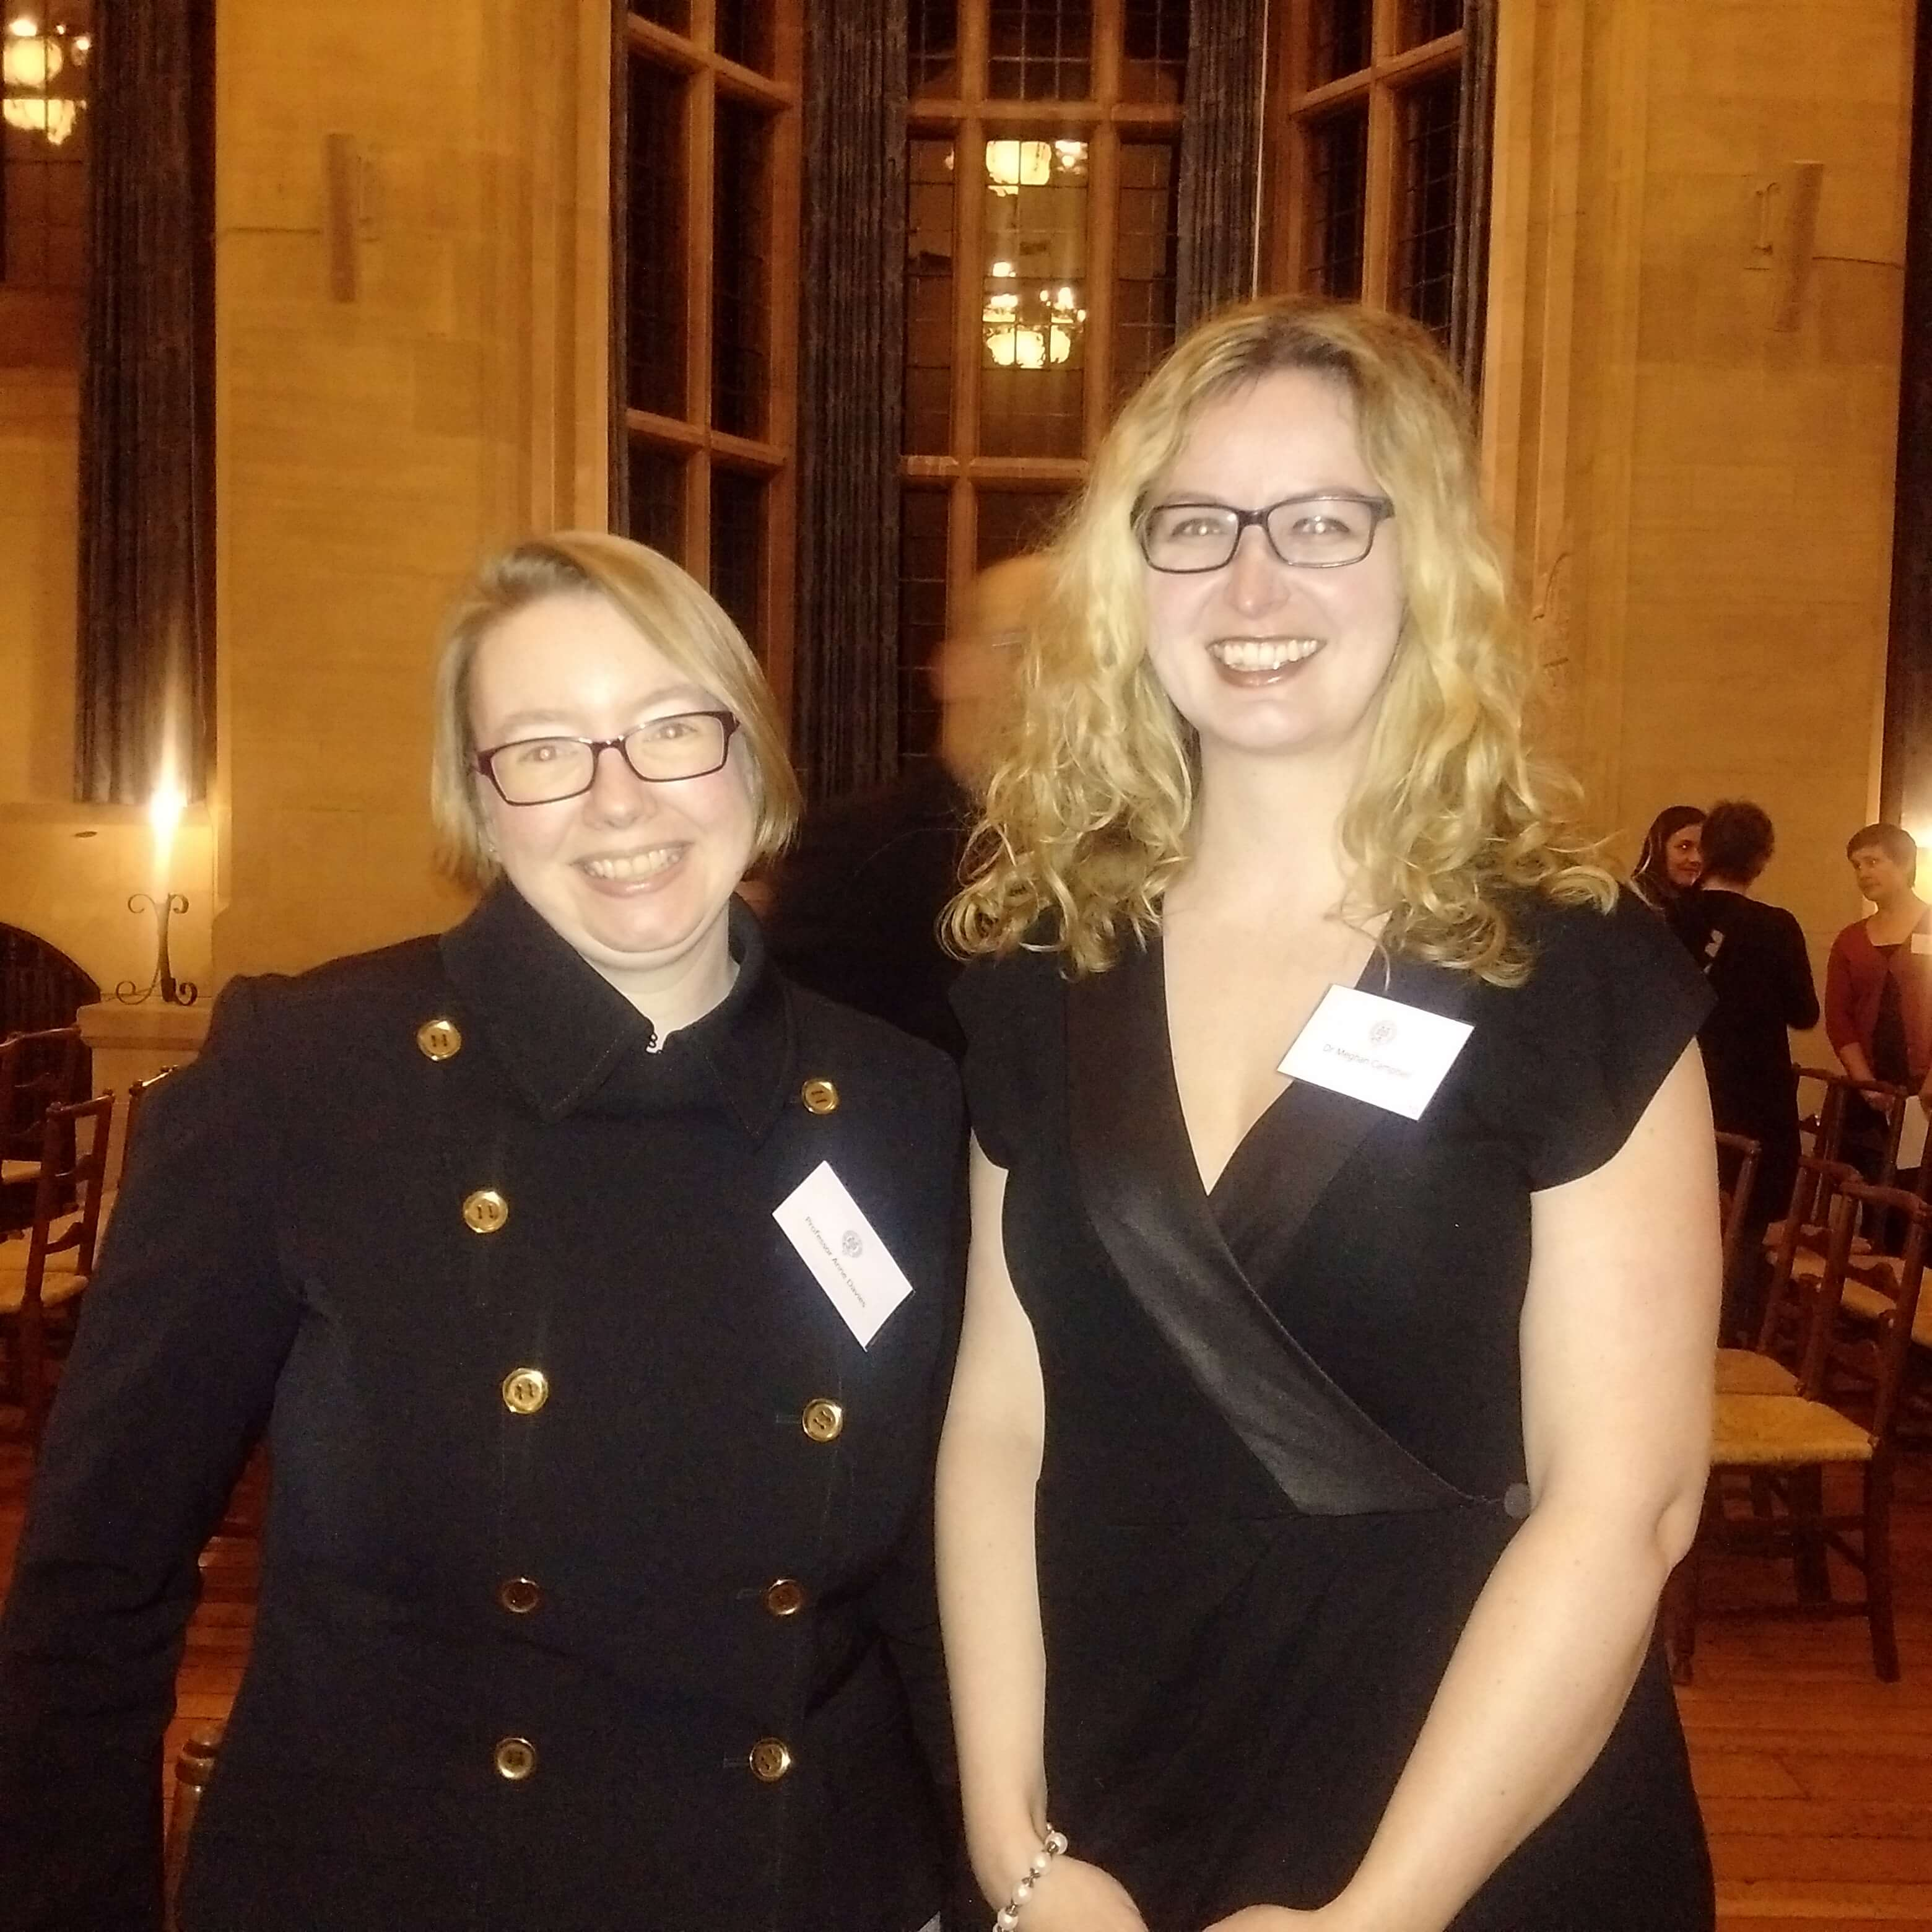 OxHRH Awarded Teaching Awards Project Grant by Oxford University